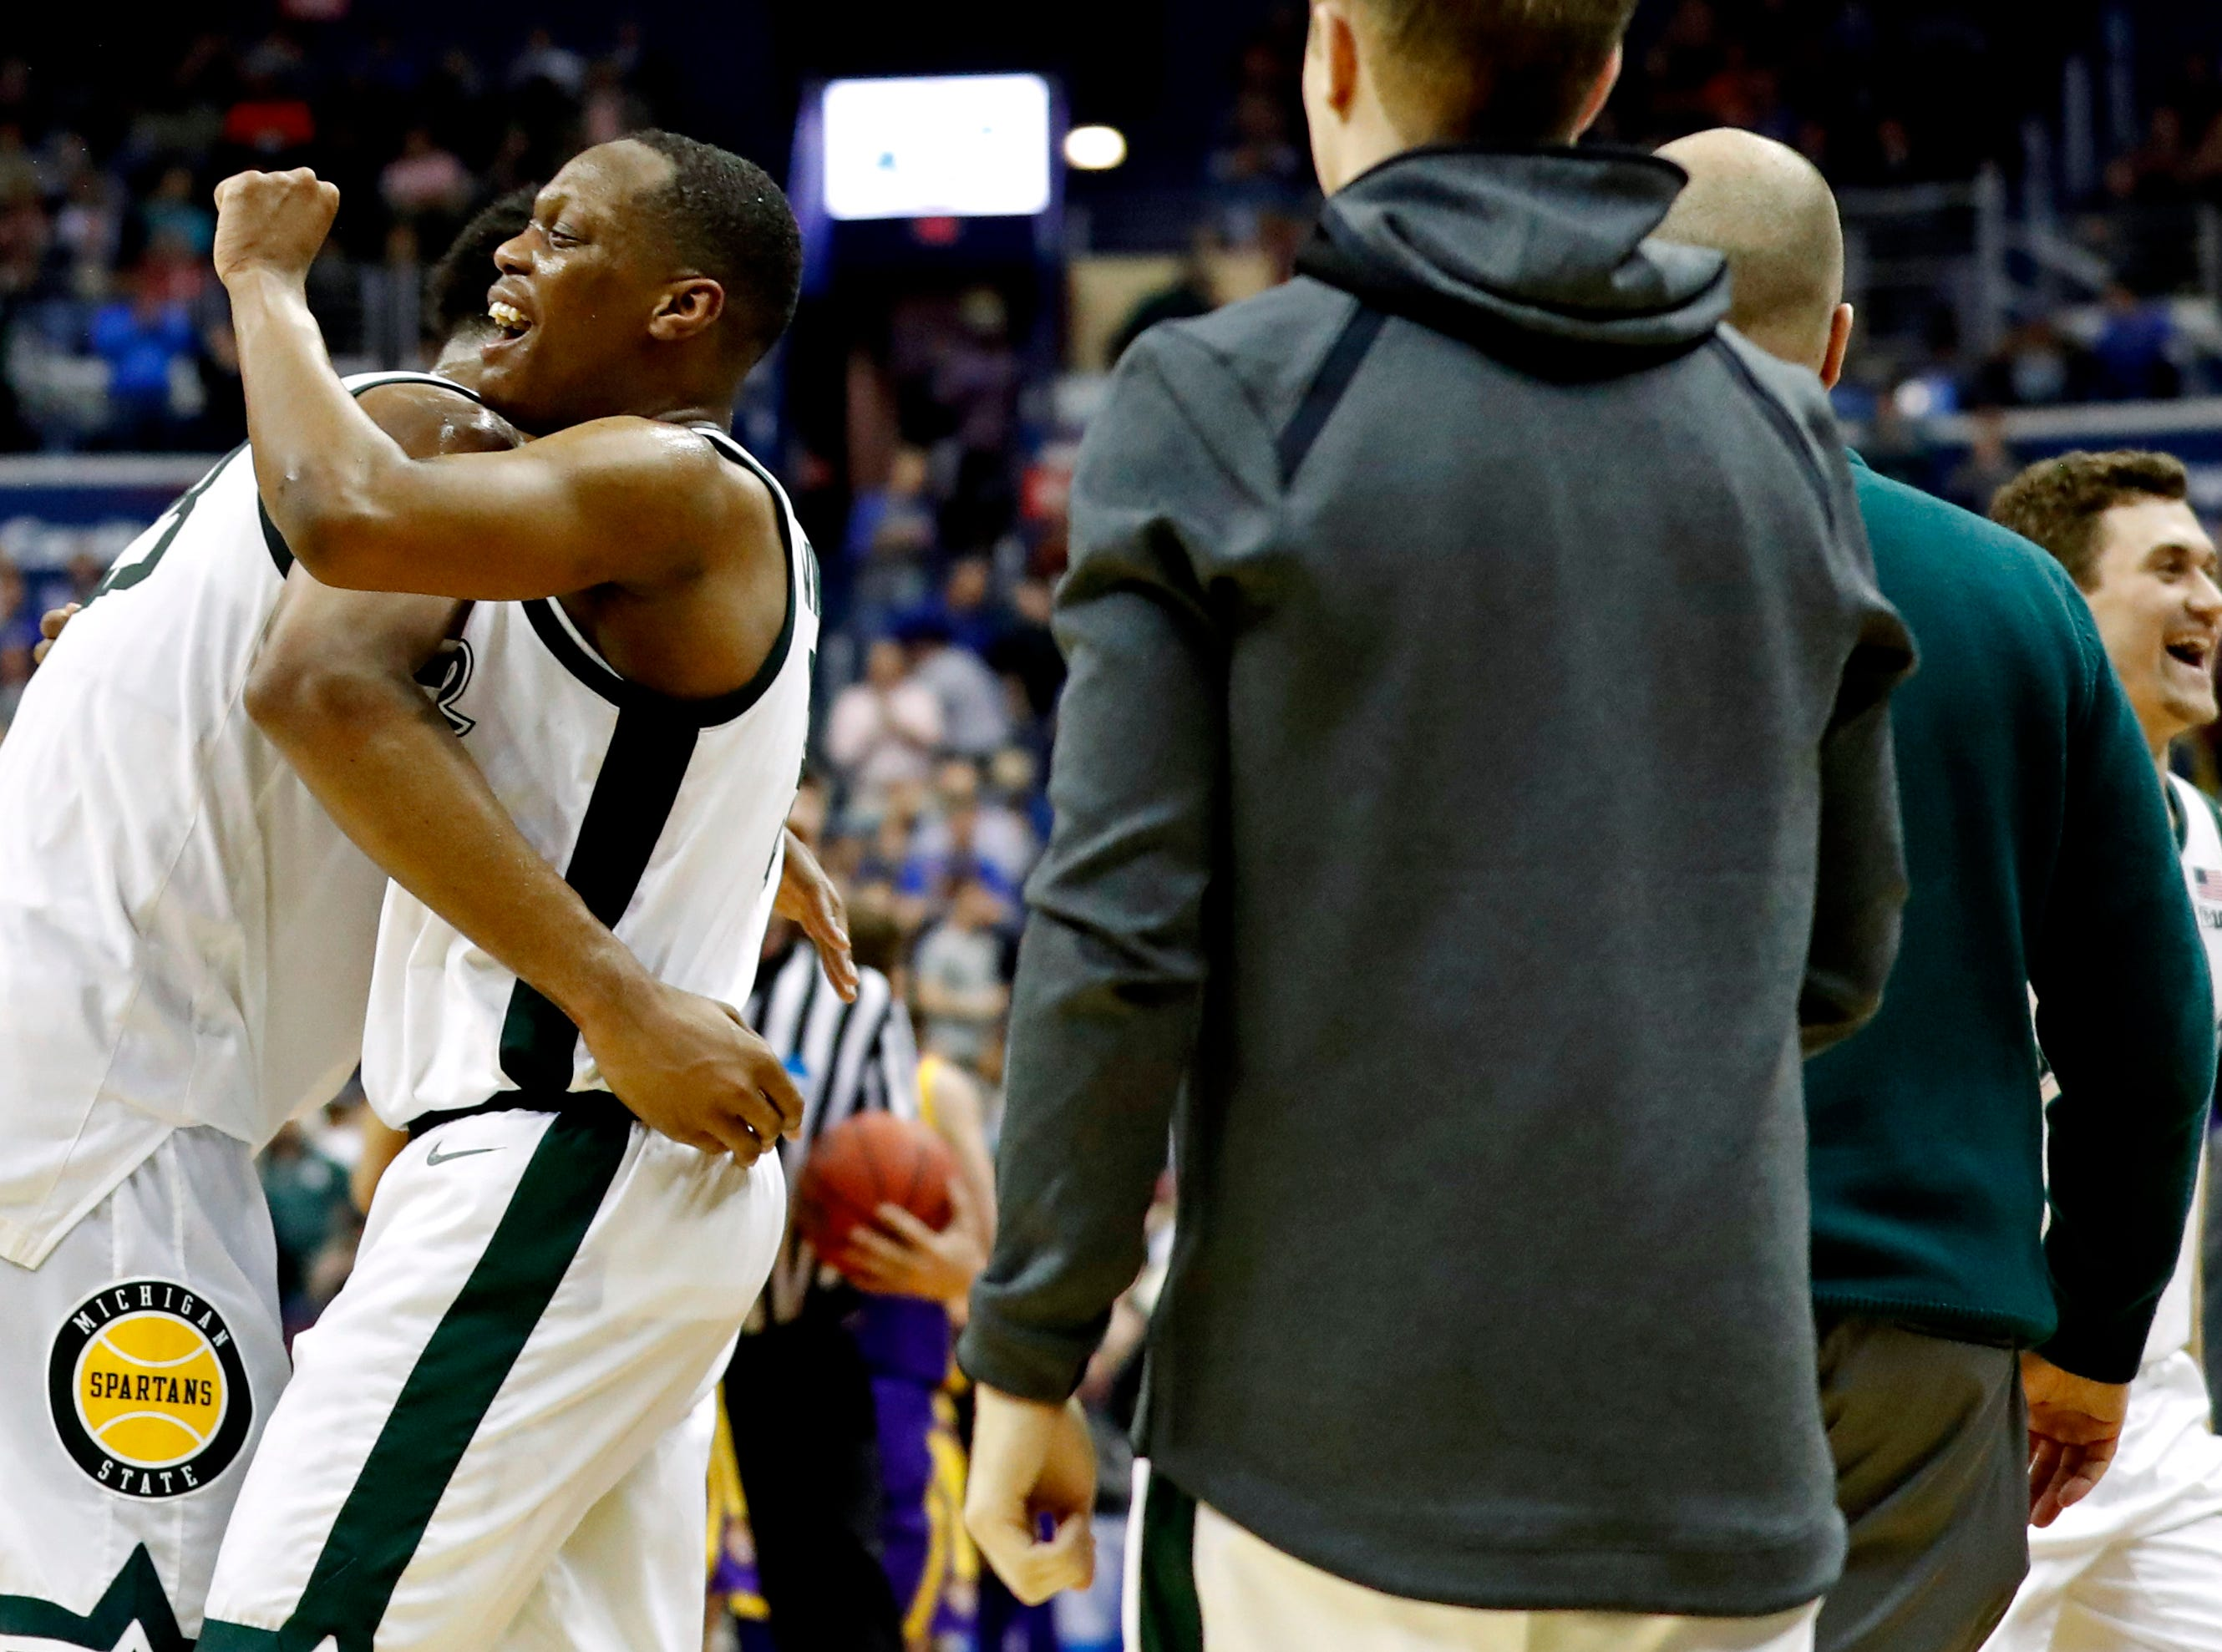 Mar 29, 2019; Washington, DC, USA; Michigan State Spartans guard Cassius Winston (5) celebrates forward Xavier Tillman (23) after beating the LSU Tigers in the semifinals of the east regional of the 2019 NCAA Tournament at Capital One Arena. Mandatory Credit: Geoff Burke-USA TODAY Sports